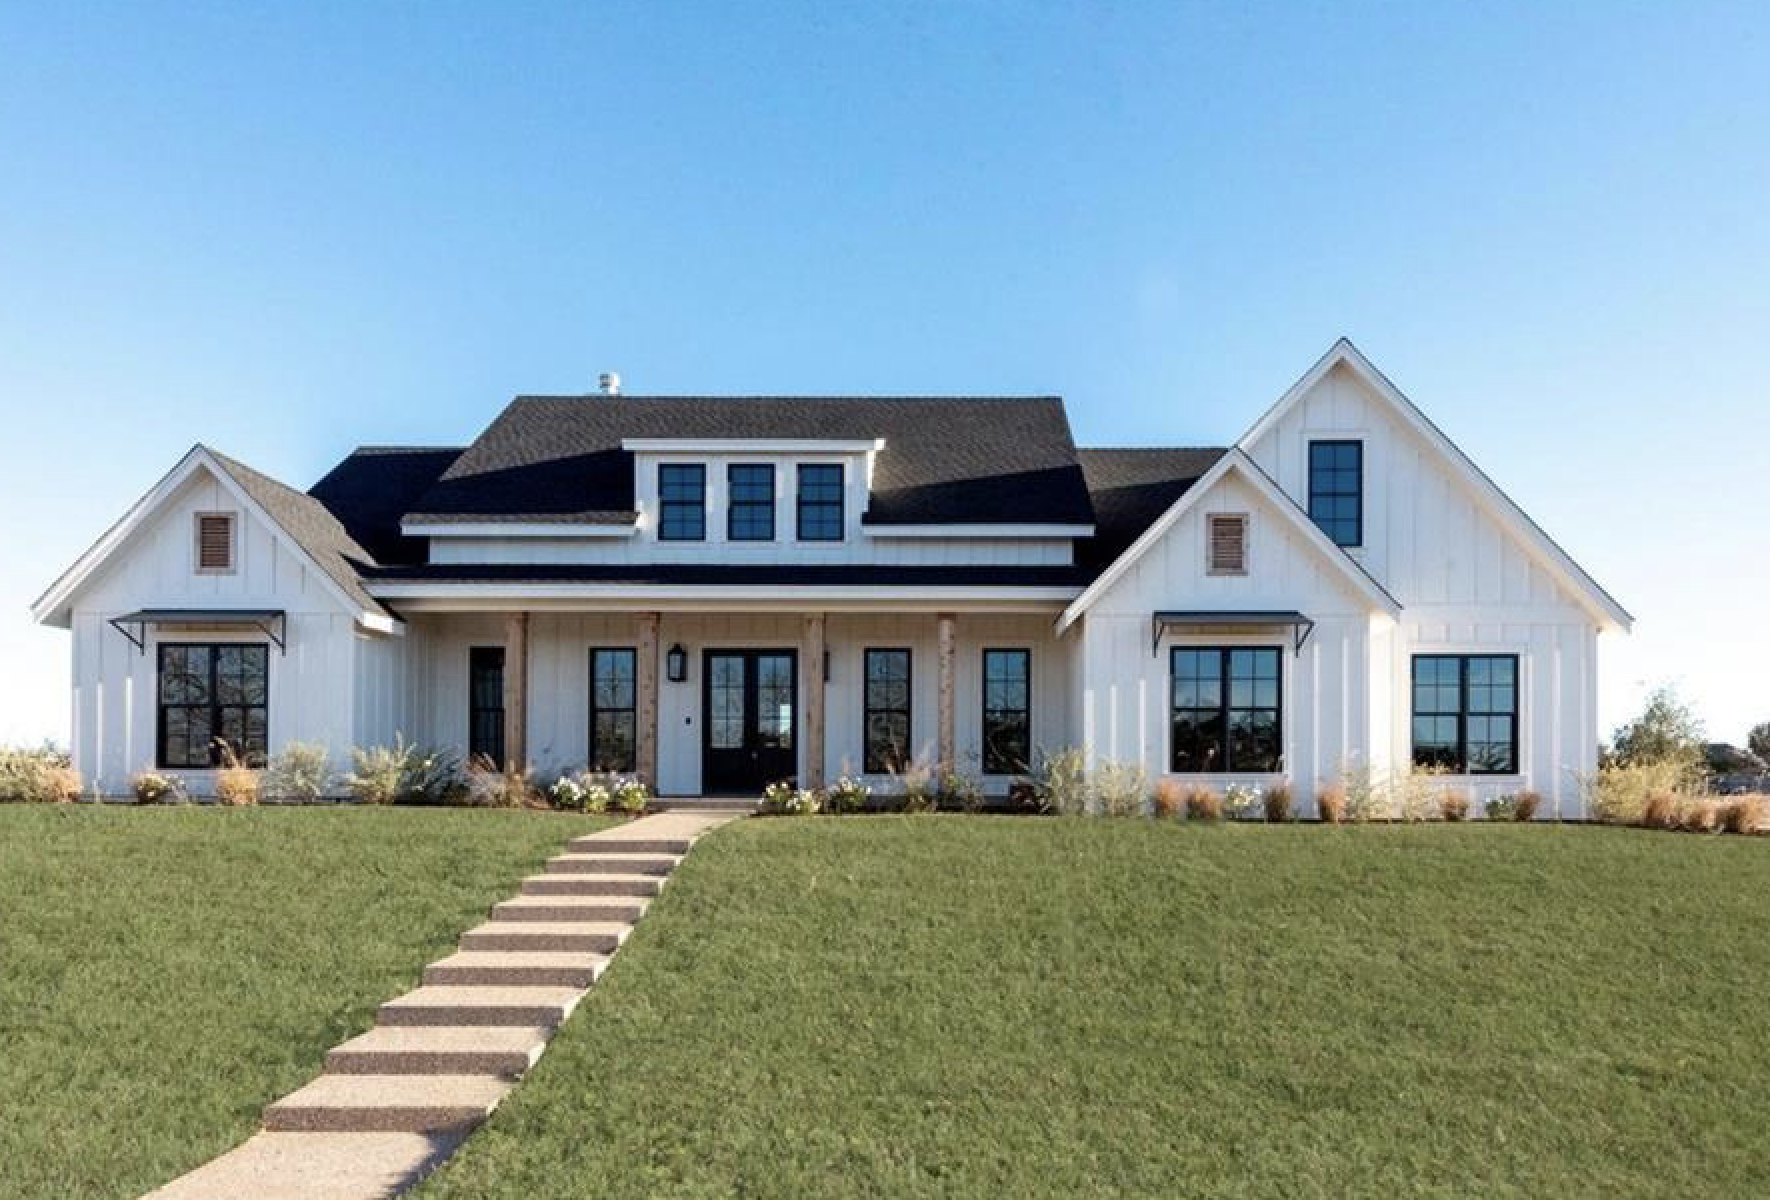 On the Market: A Chip and Joanna Gaines Farmhouse in China Spring, Texas